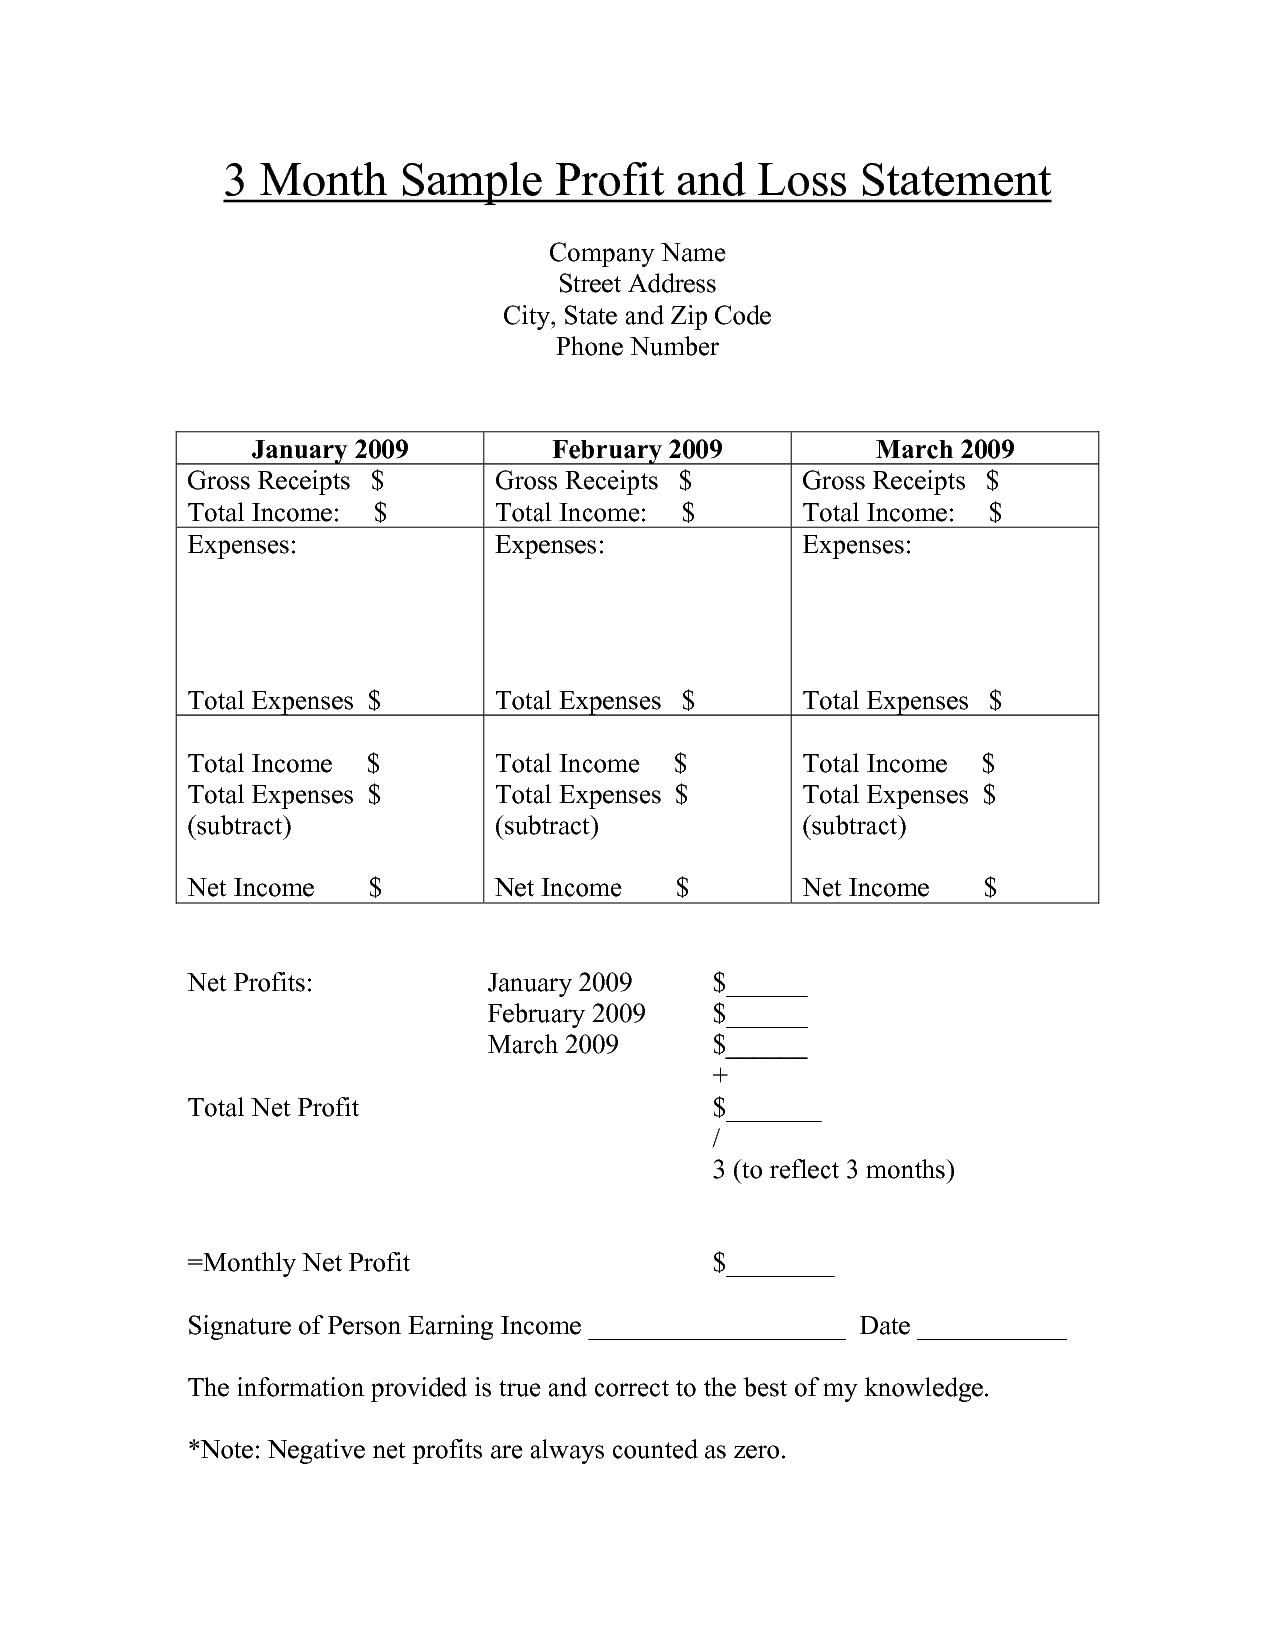 Accounting Worksheet With Net Loss